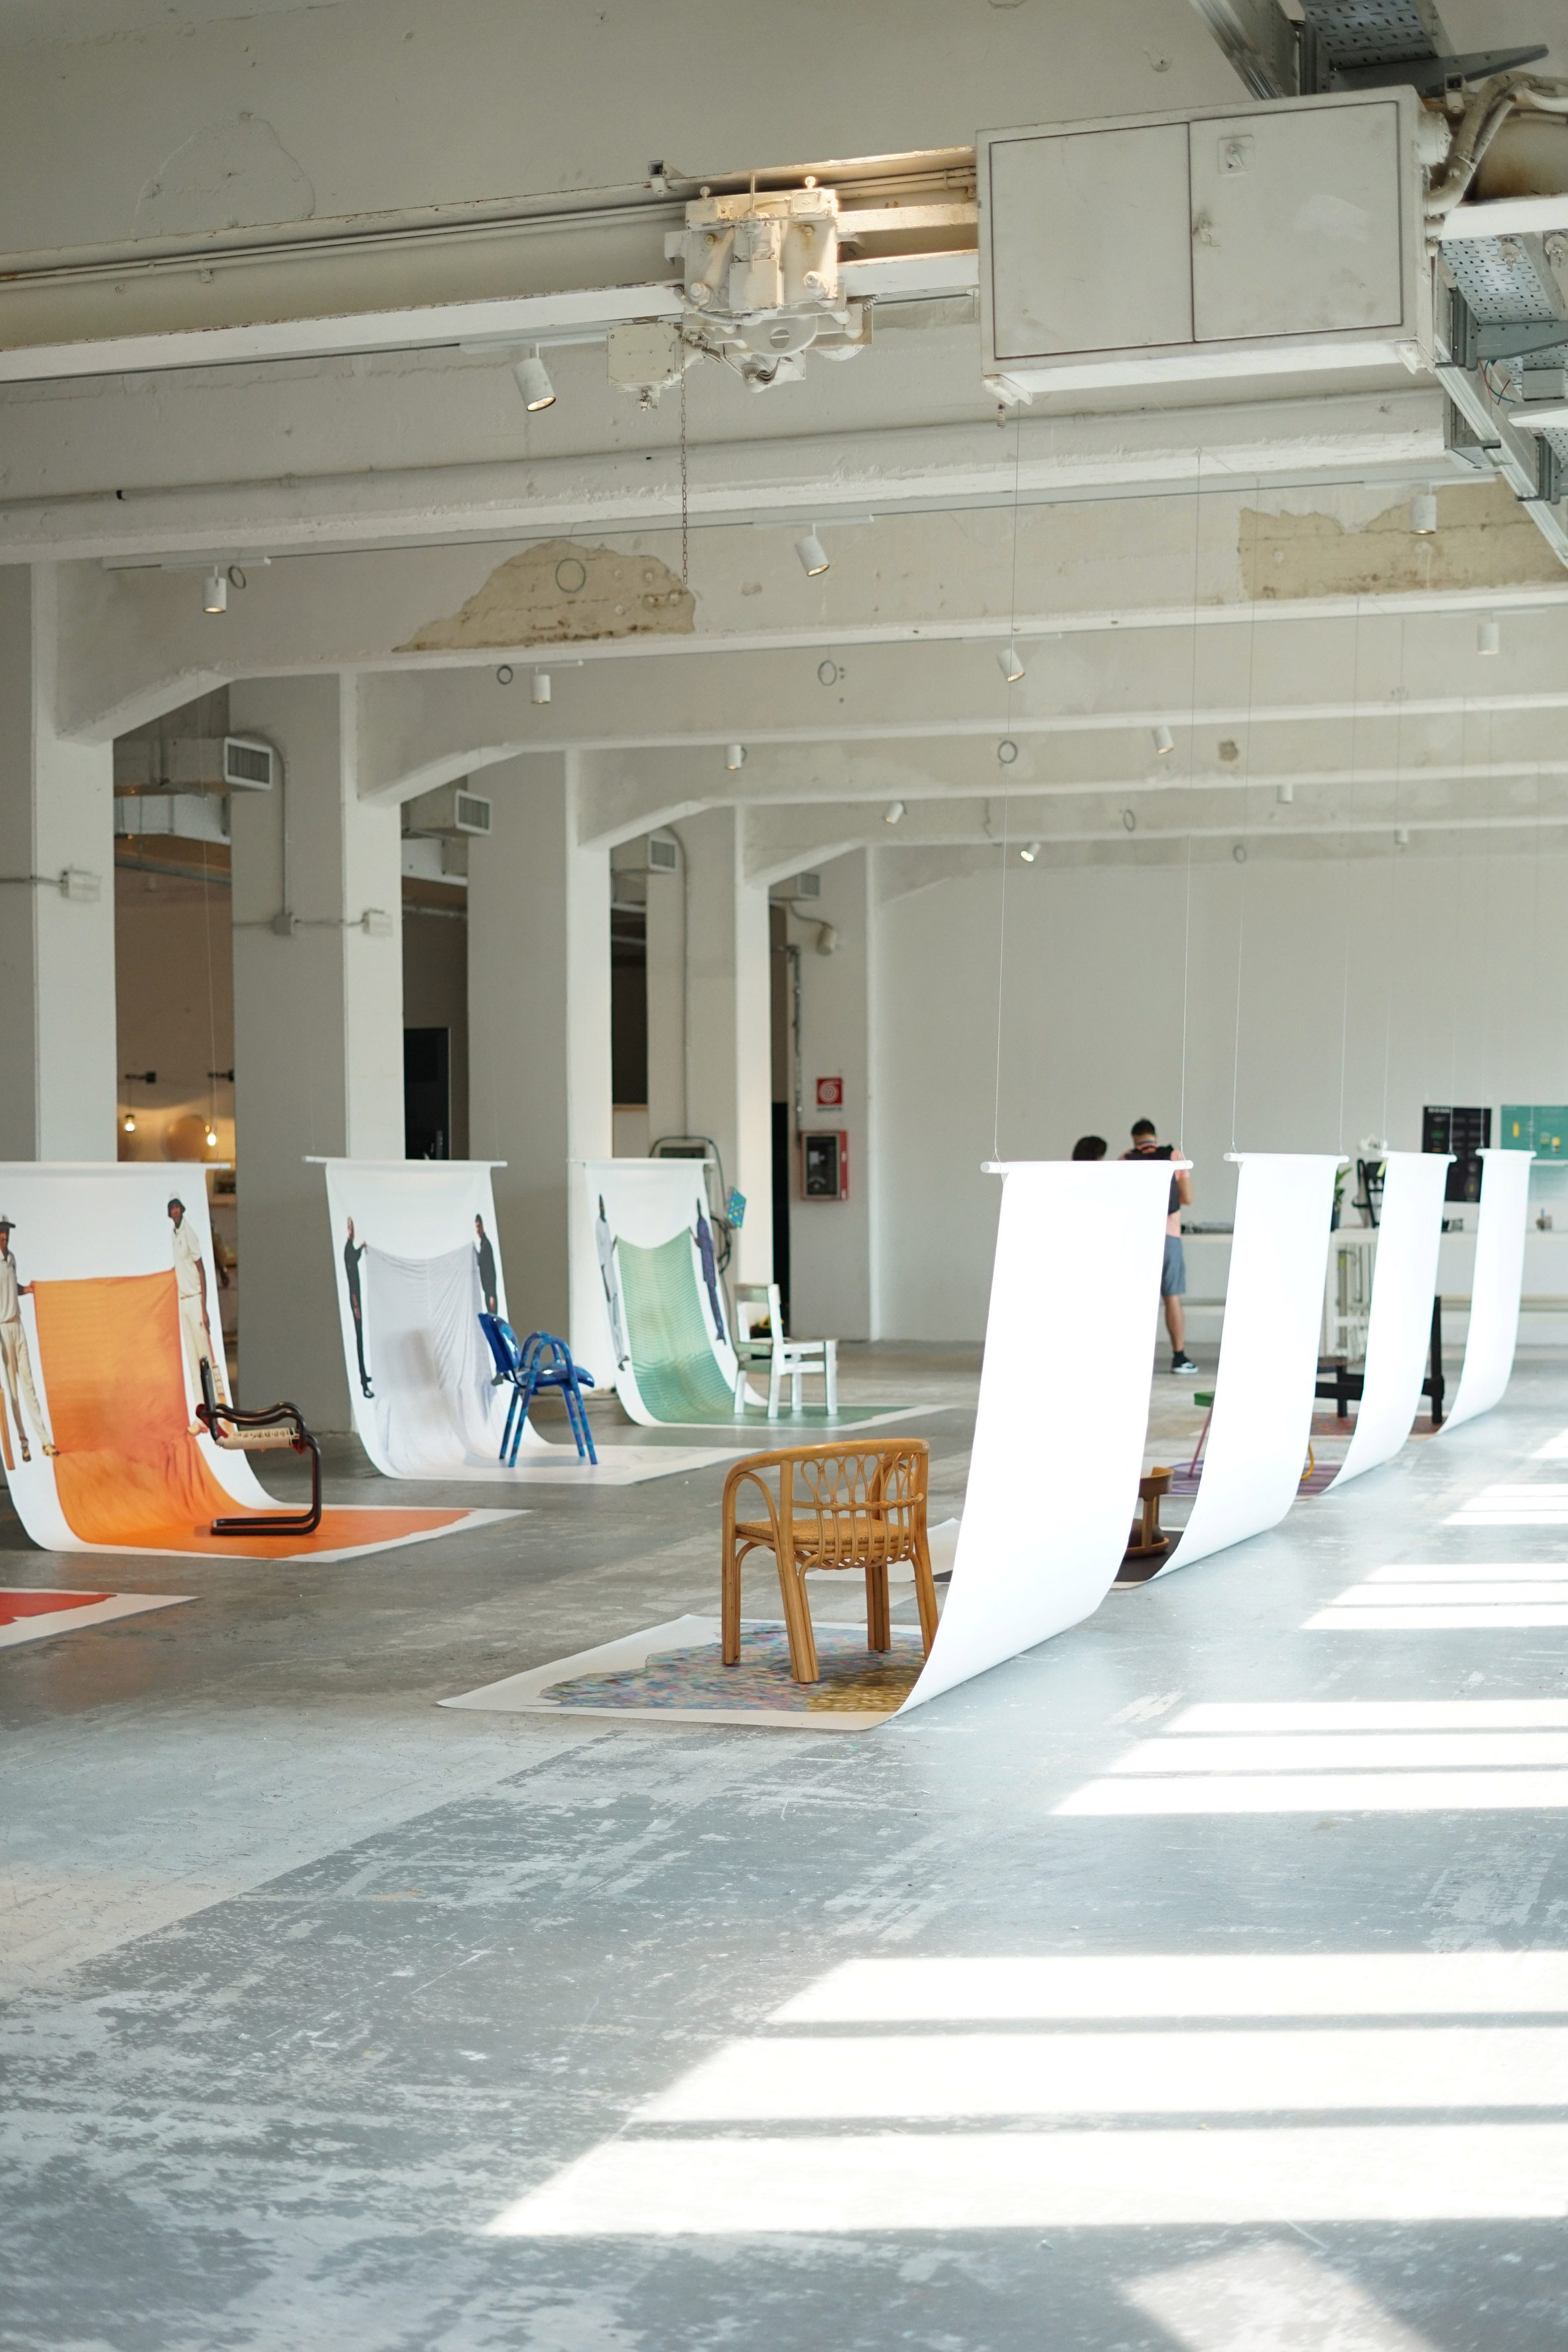 Cross Cultural Chairs exhibition by Matteo Guarnaccia at Milan design week